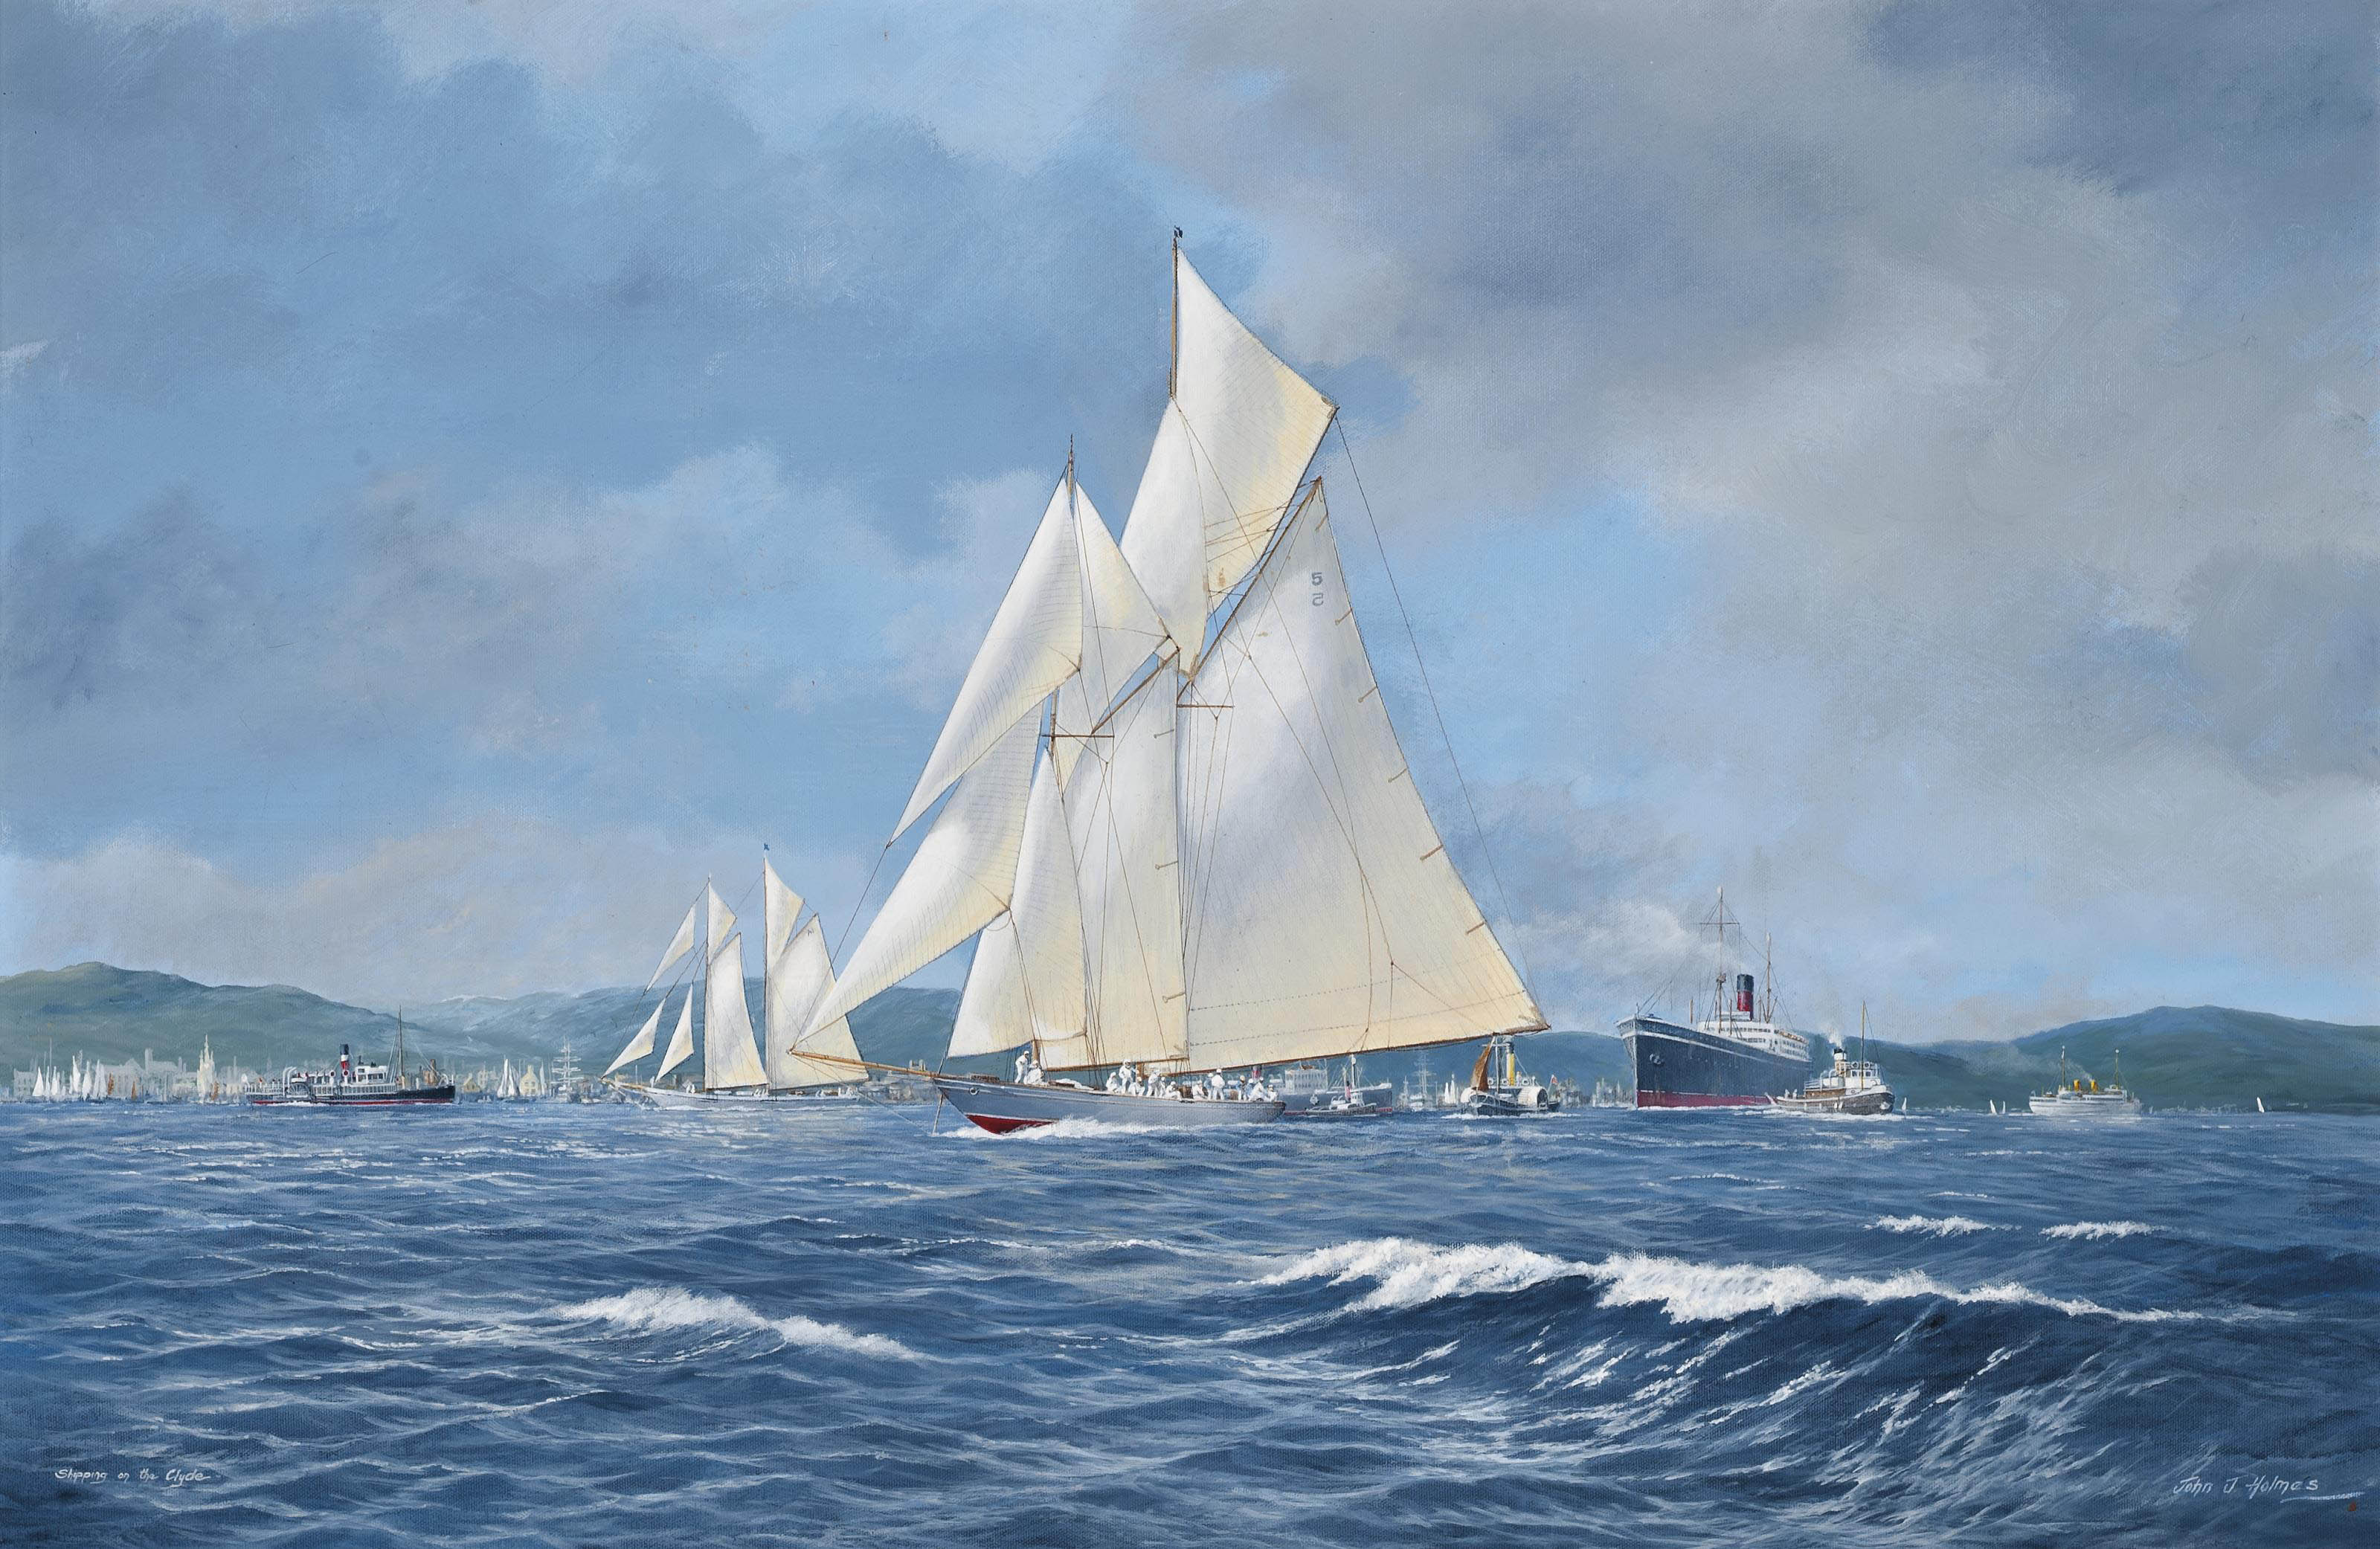 Westward racing on the Clyde with the paddle steamer Marmion off her starboard beam; and Britannia and Westward racing to windward on the Clyde